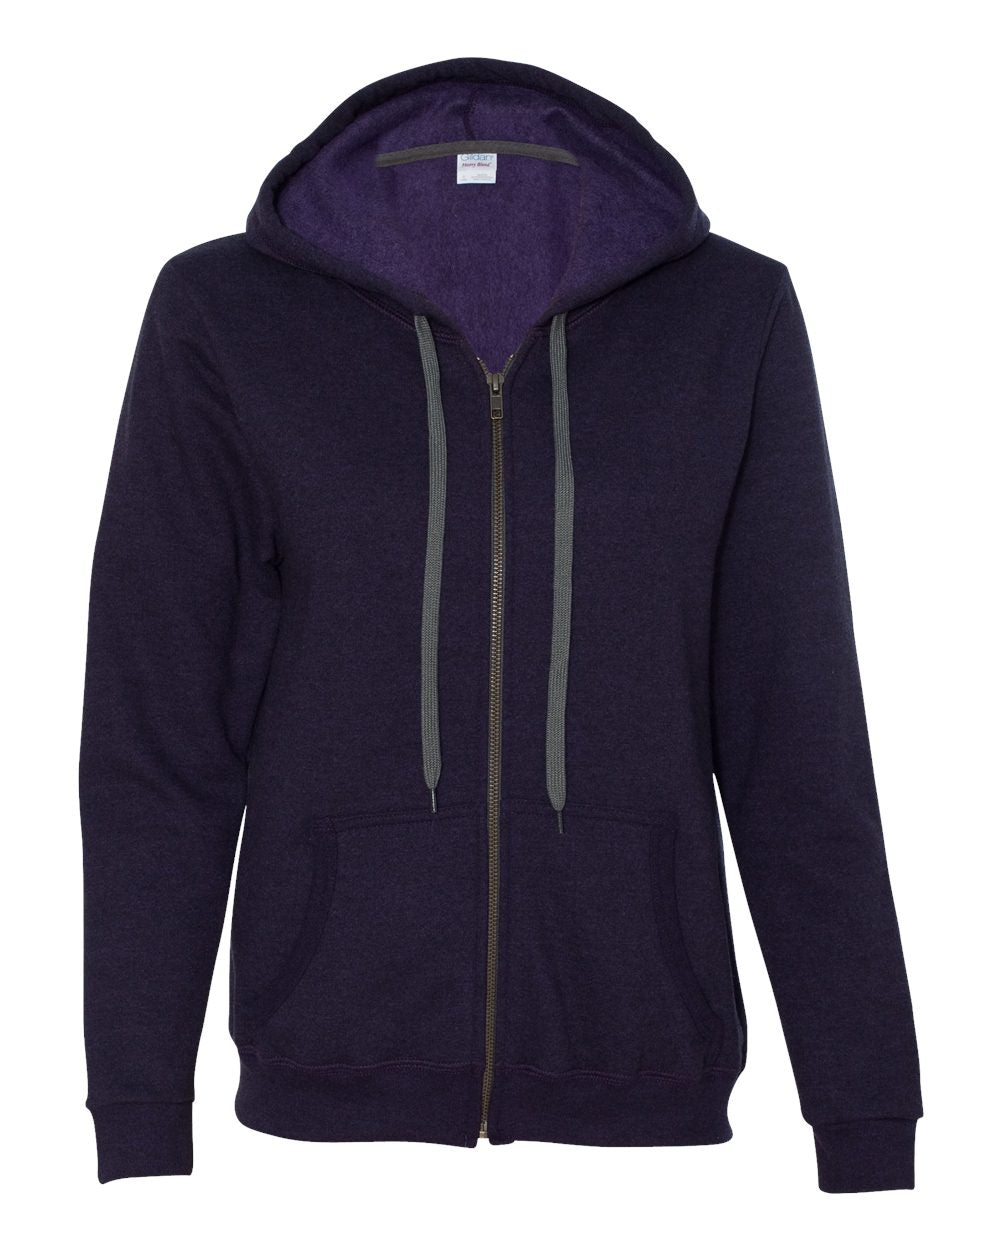 Heavy Blend Women's Vintage Full-Zip Hooded Sweatshirt